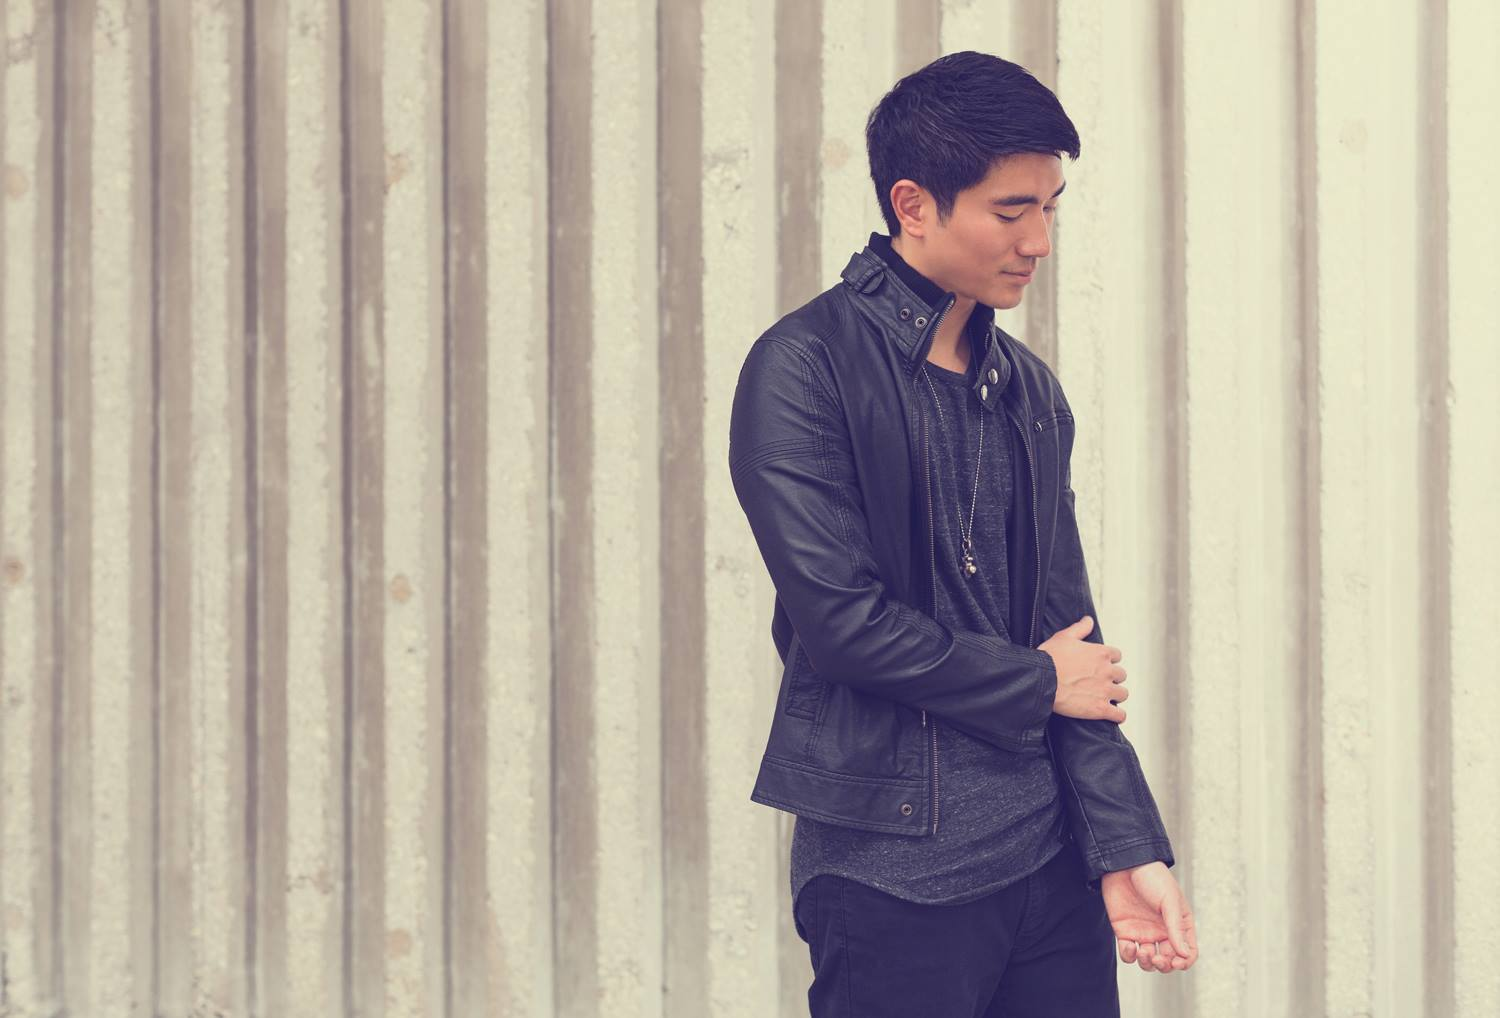 Singapore DJ-Producer MMXJ scheduled to release debut album on 27th November